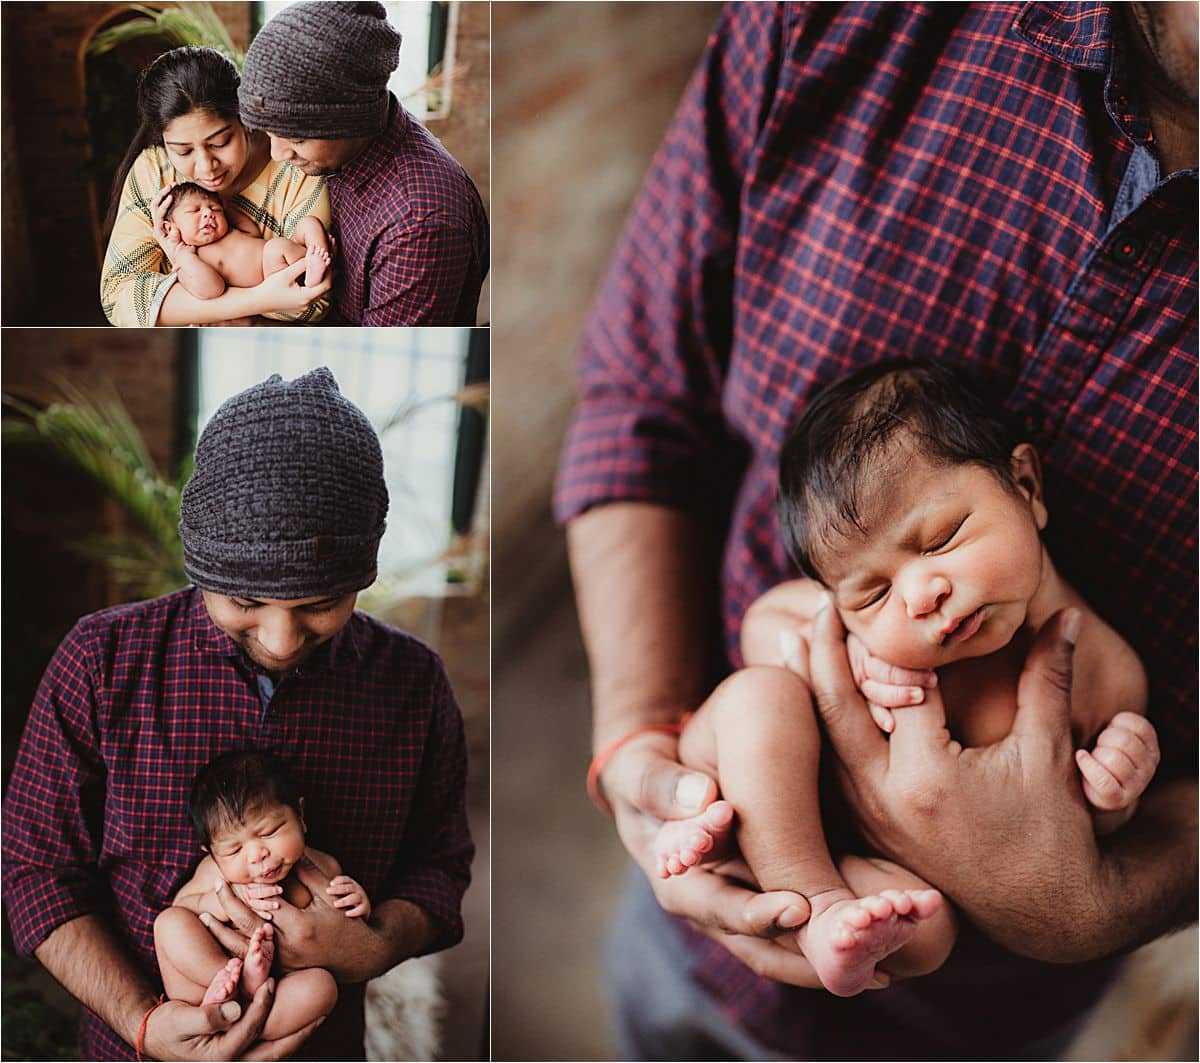 Newborn Rustic Studio Session with Parents